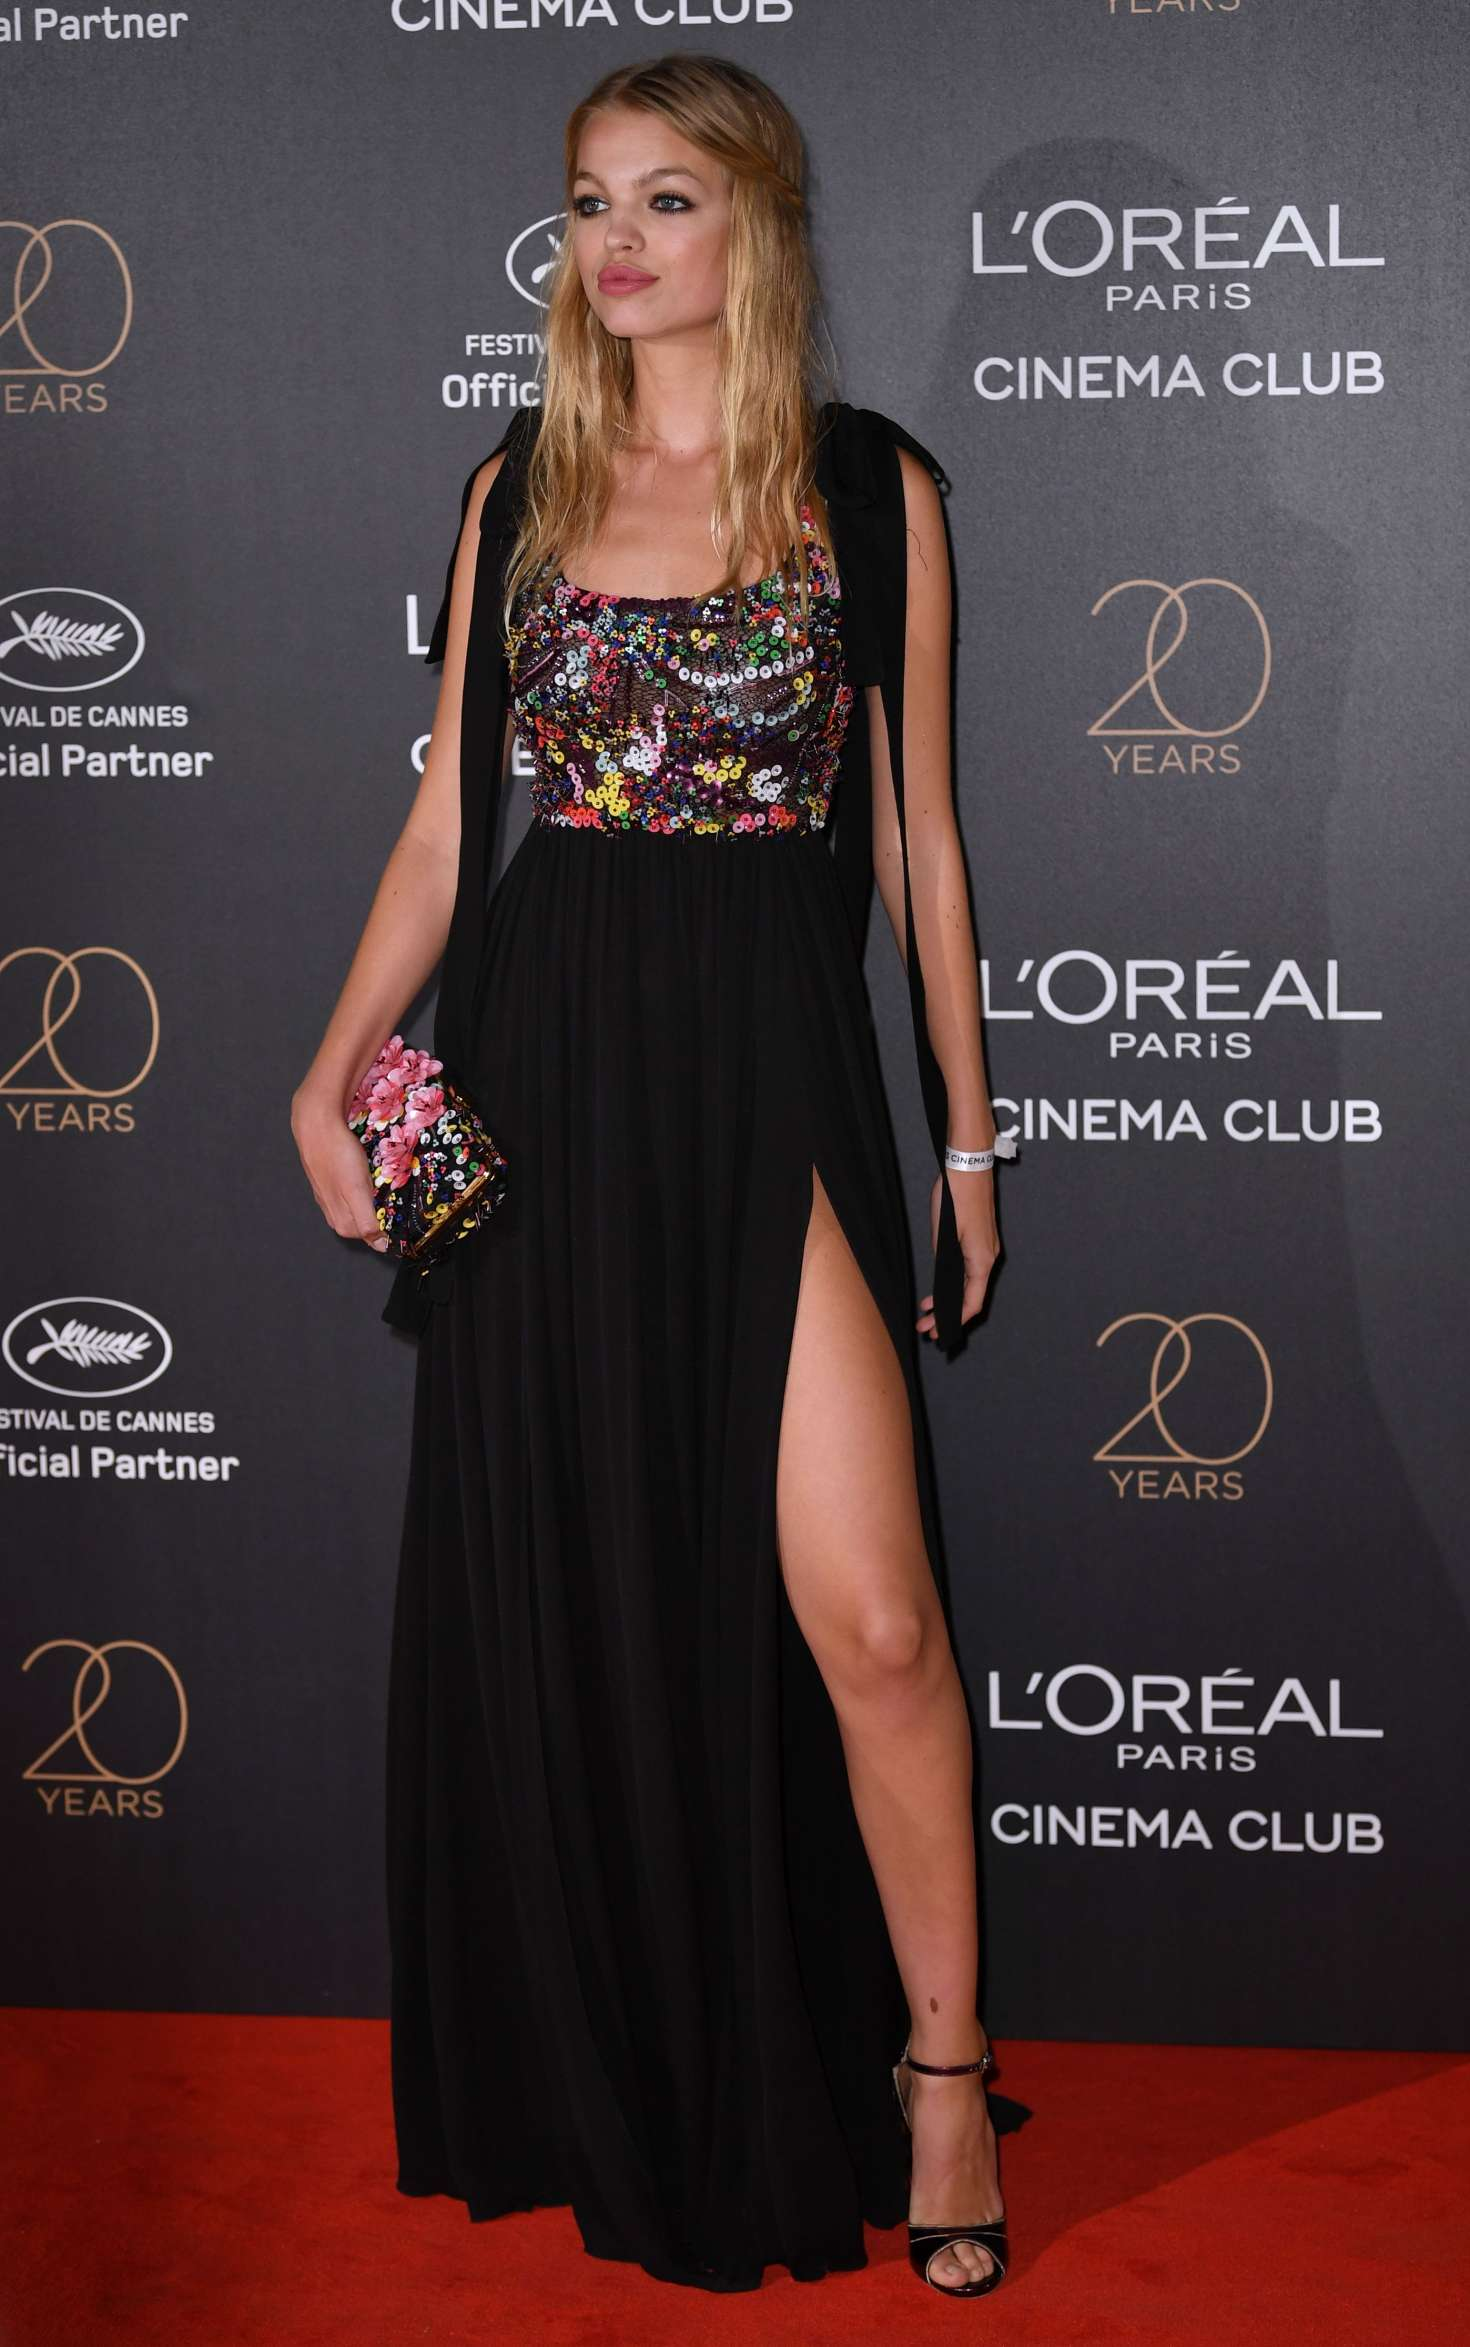 Daphne Groeneveld 2017 : Daphne Groeneveld: LOreal 20th Anniversary Party in Cannes -05